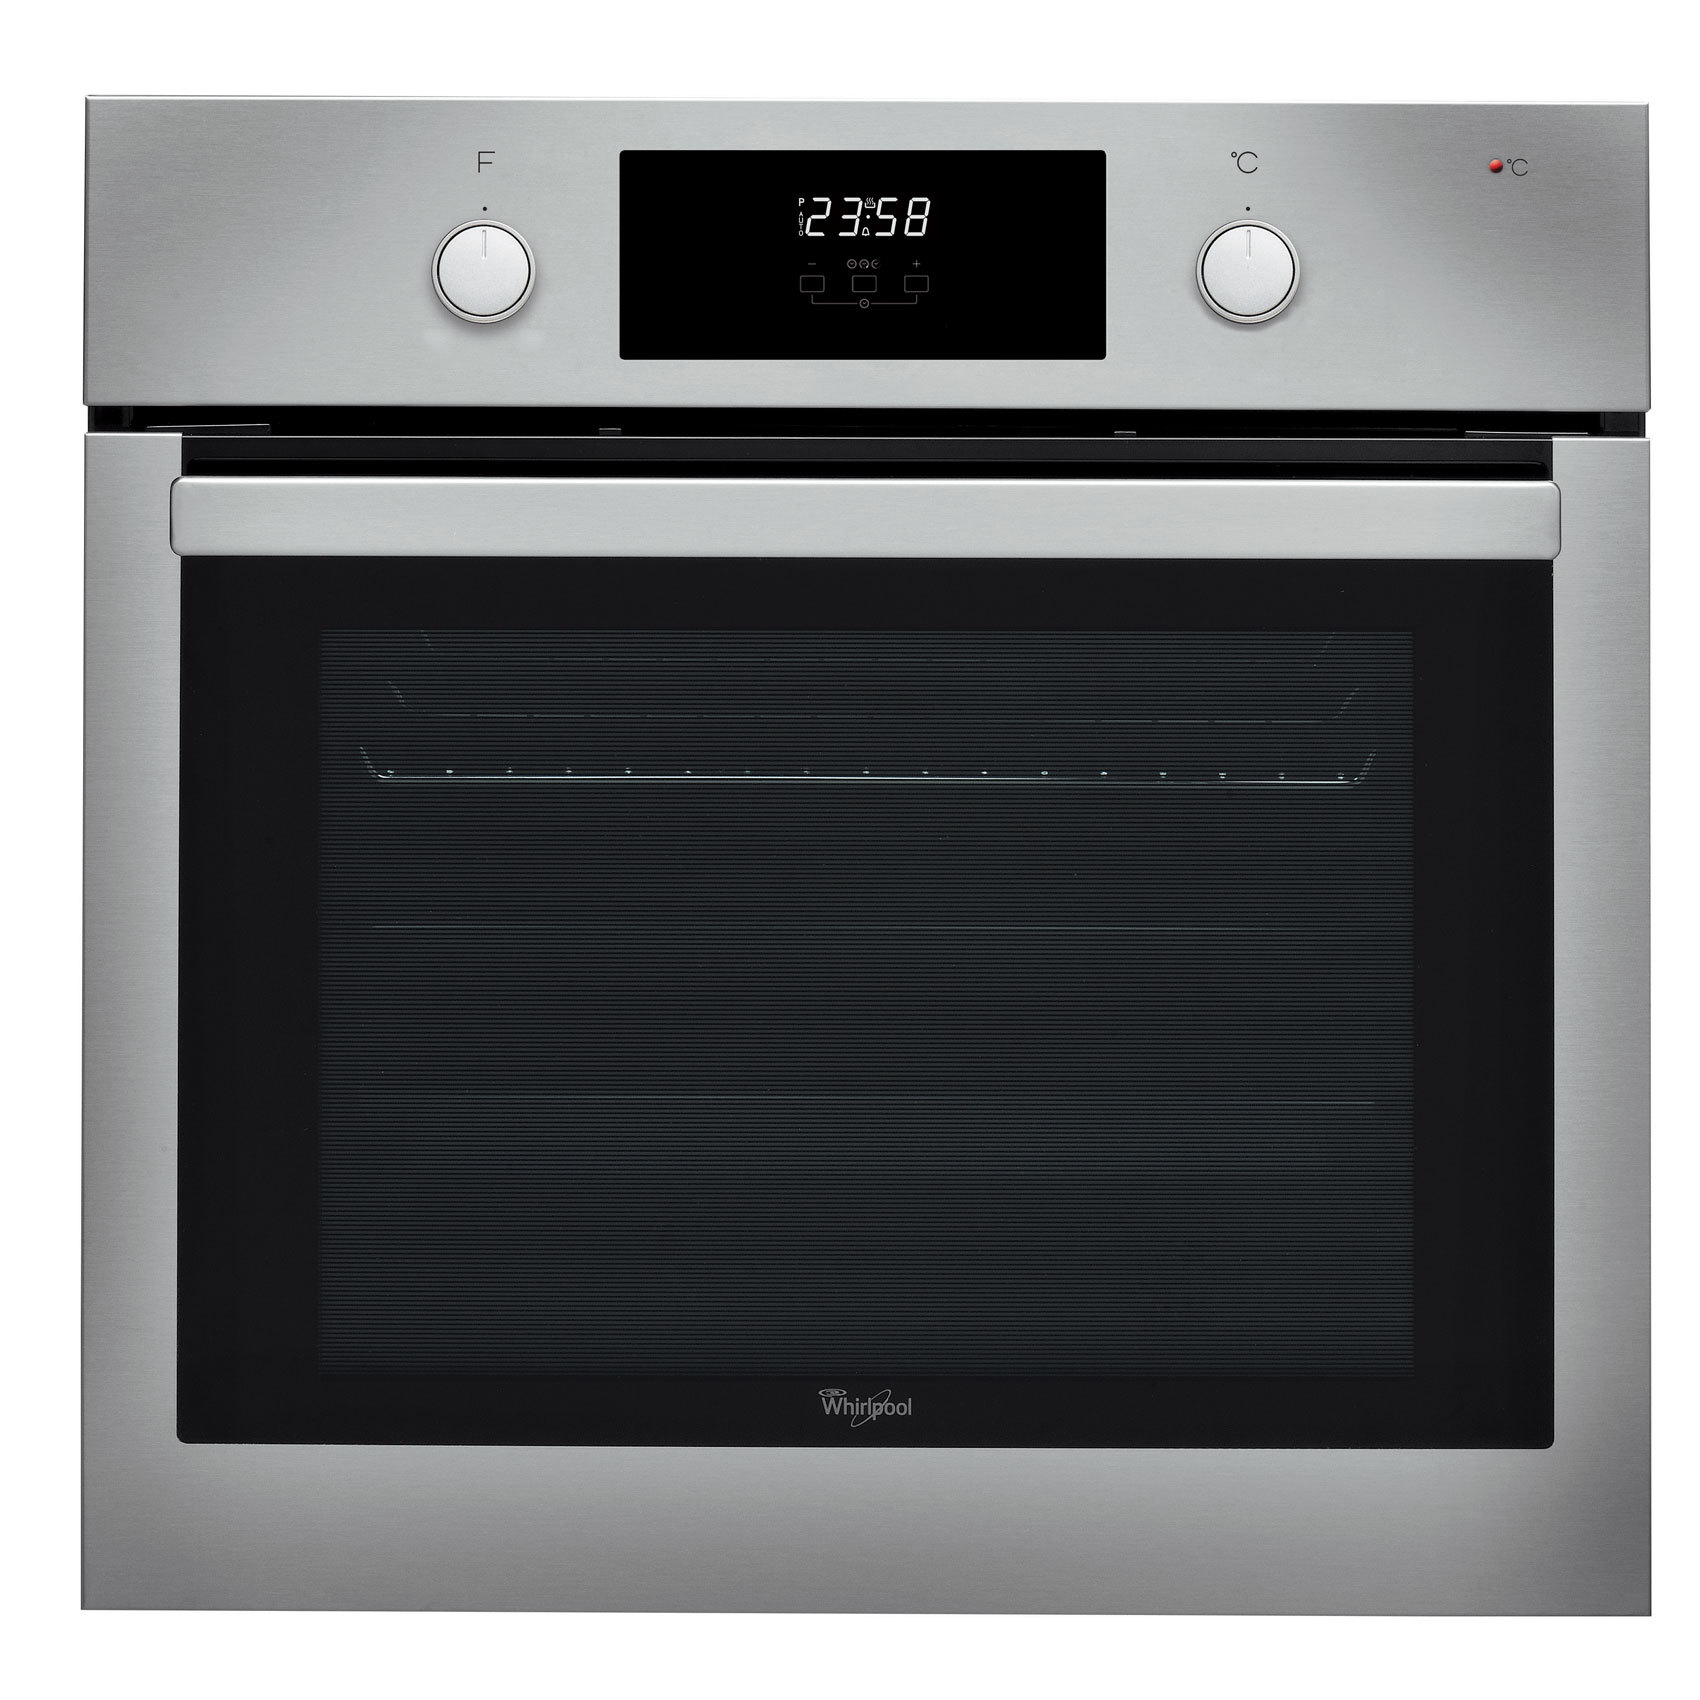 WHIRLPOOL BUILT-IN OVEN AKP745IX